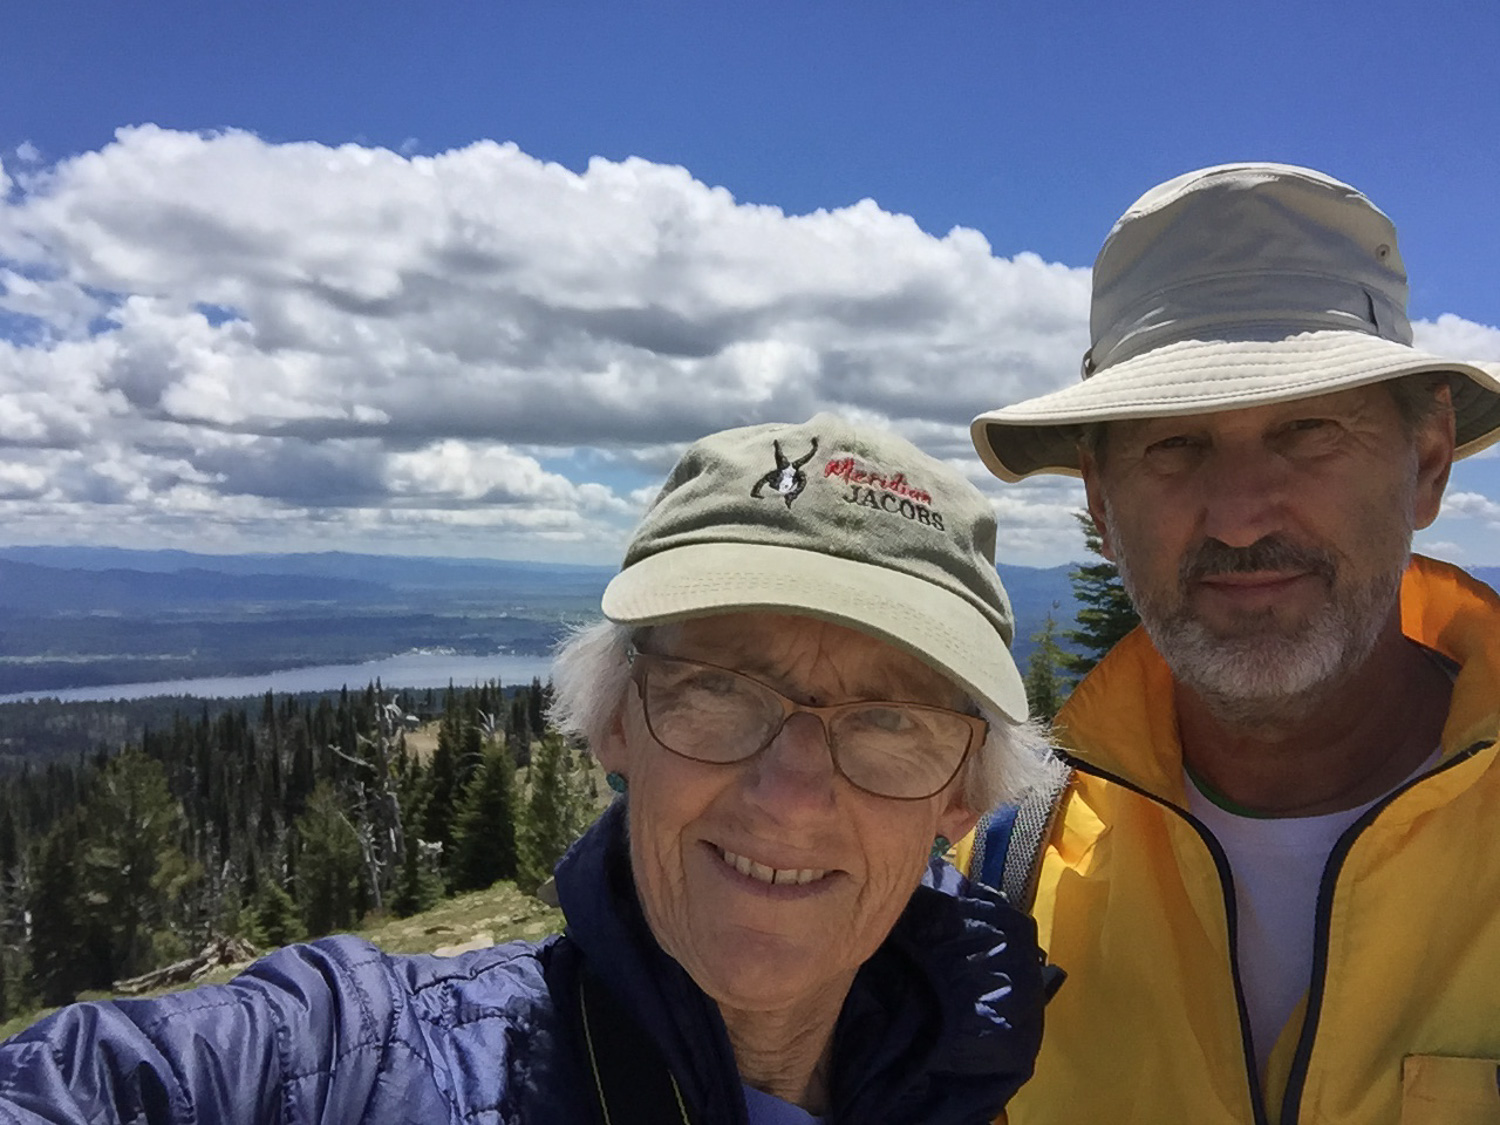 Selfie at Brundage Mountain lookout.